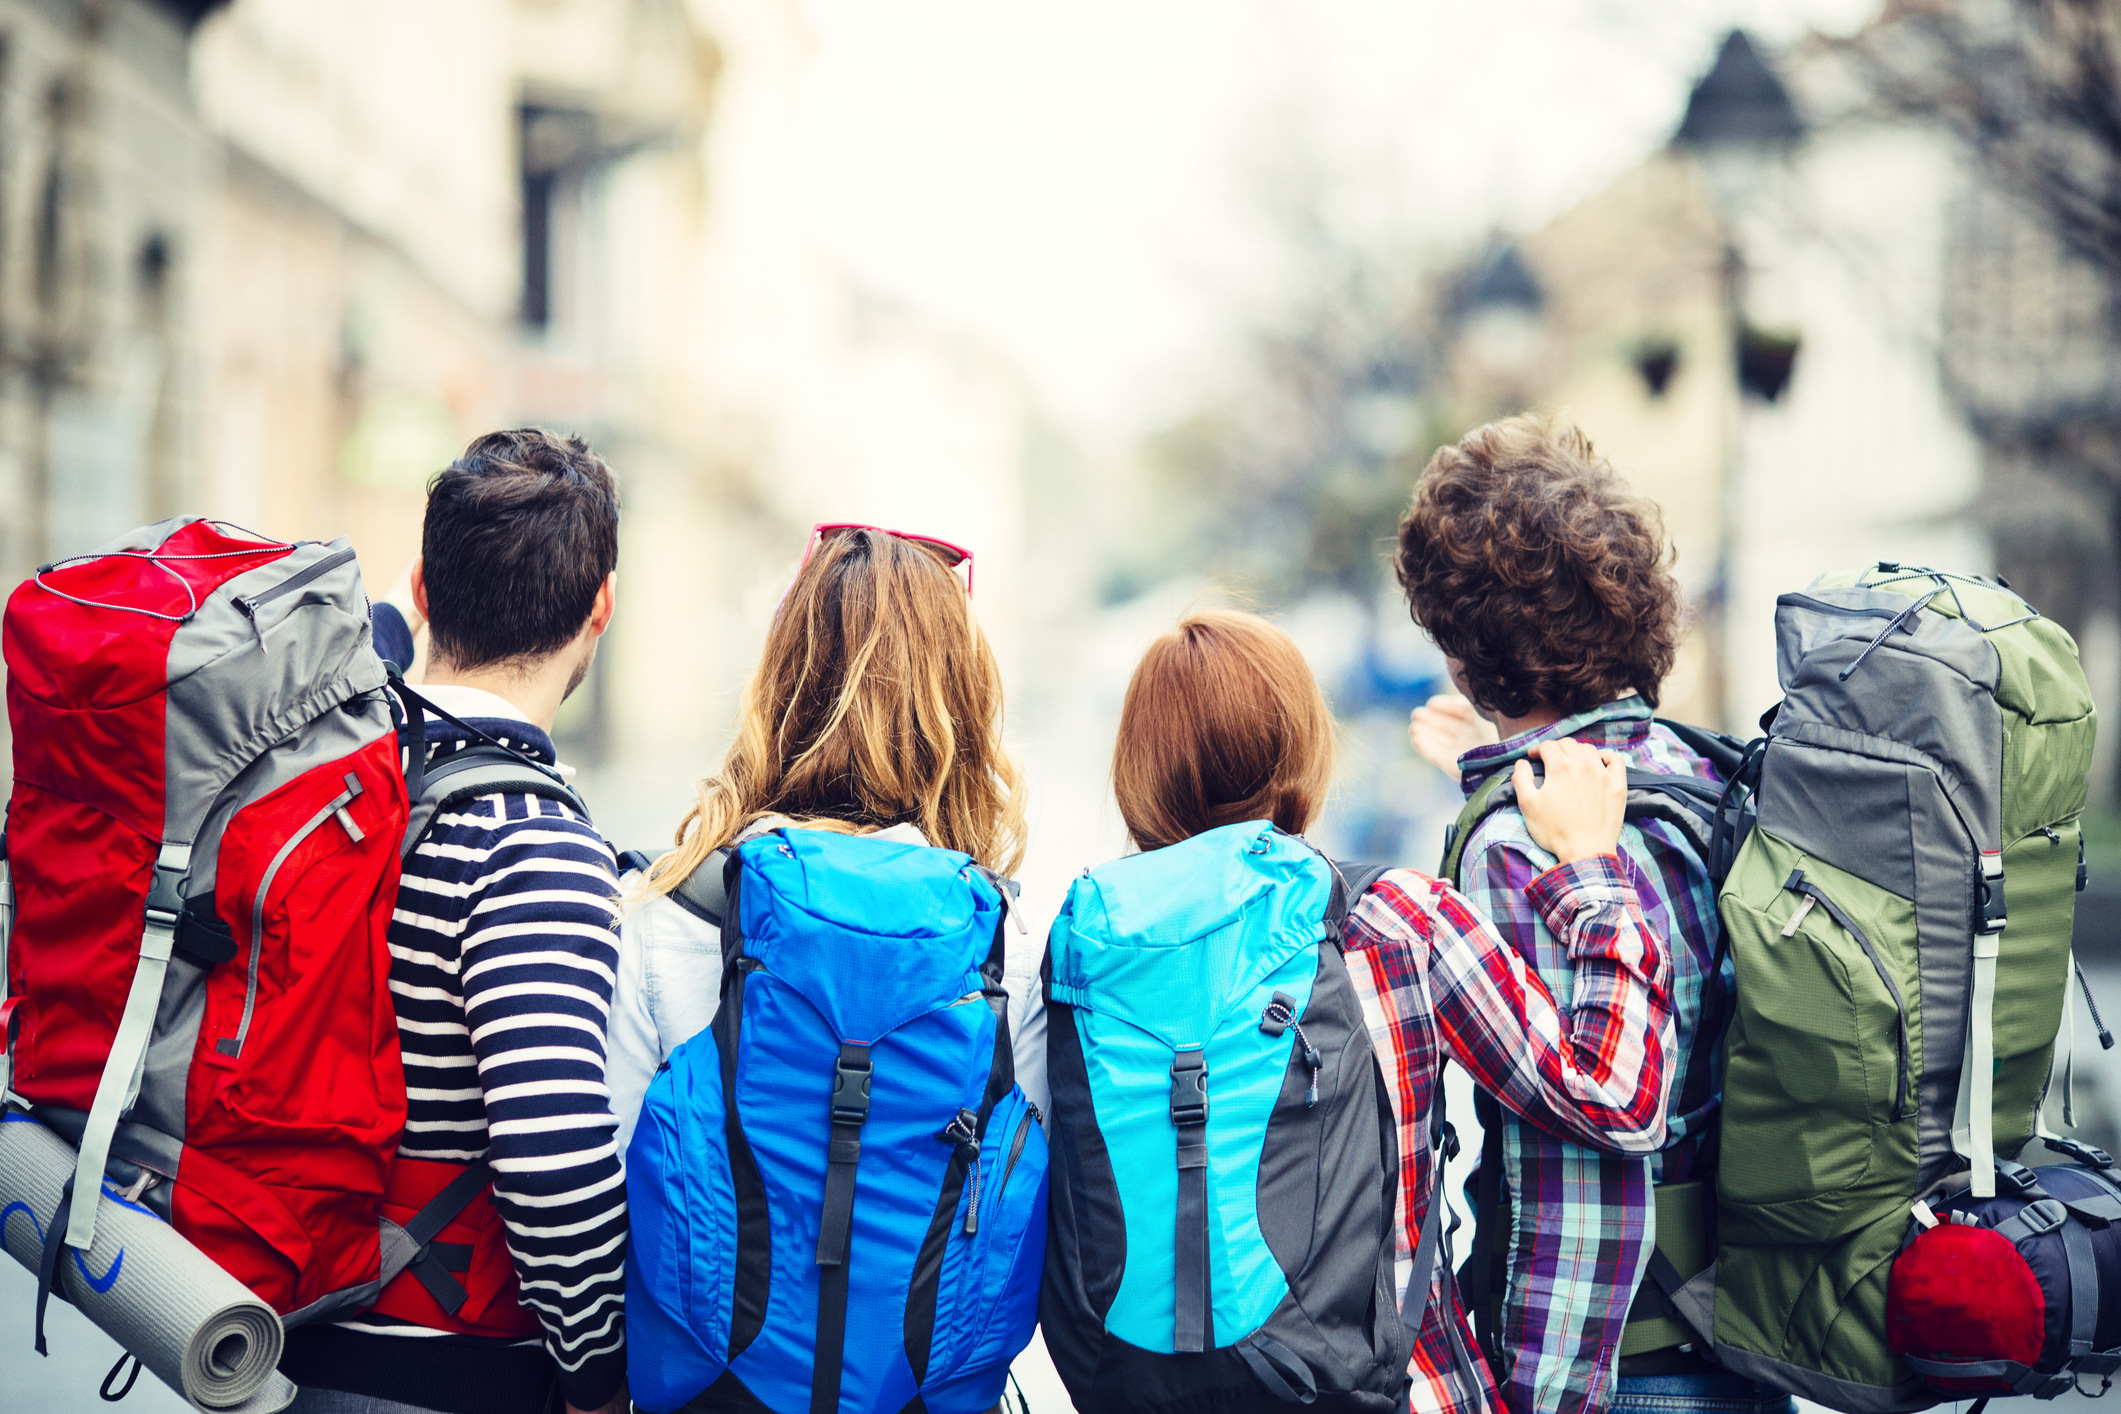 Rear view of young backpackers in the city. Looking forward in down town street of Knez Mihailova, Belgrade, Serbia.